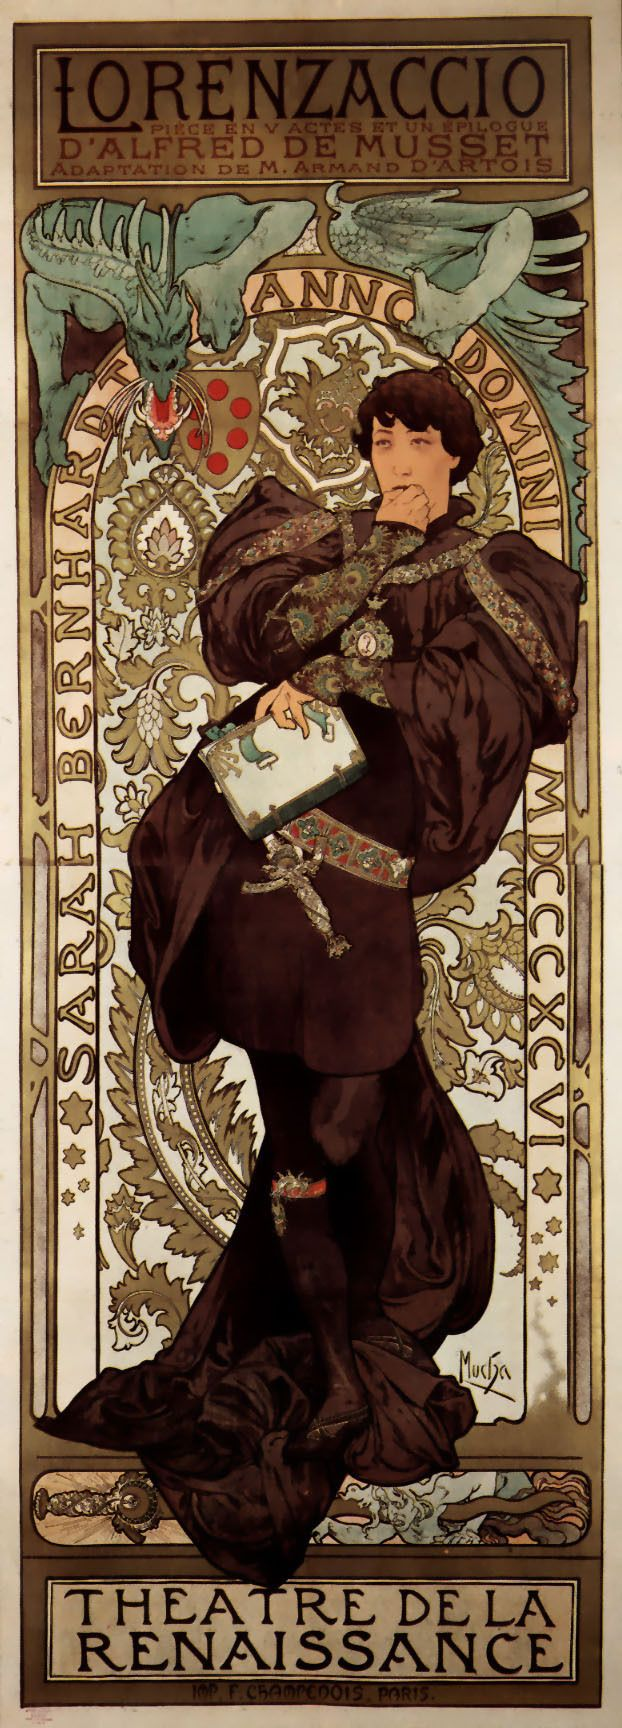 Poster for the premiere of the play in 1896, in which the title role was played by Sarah Bernhardt